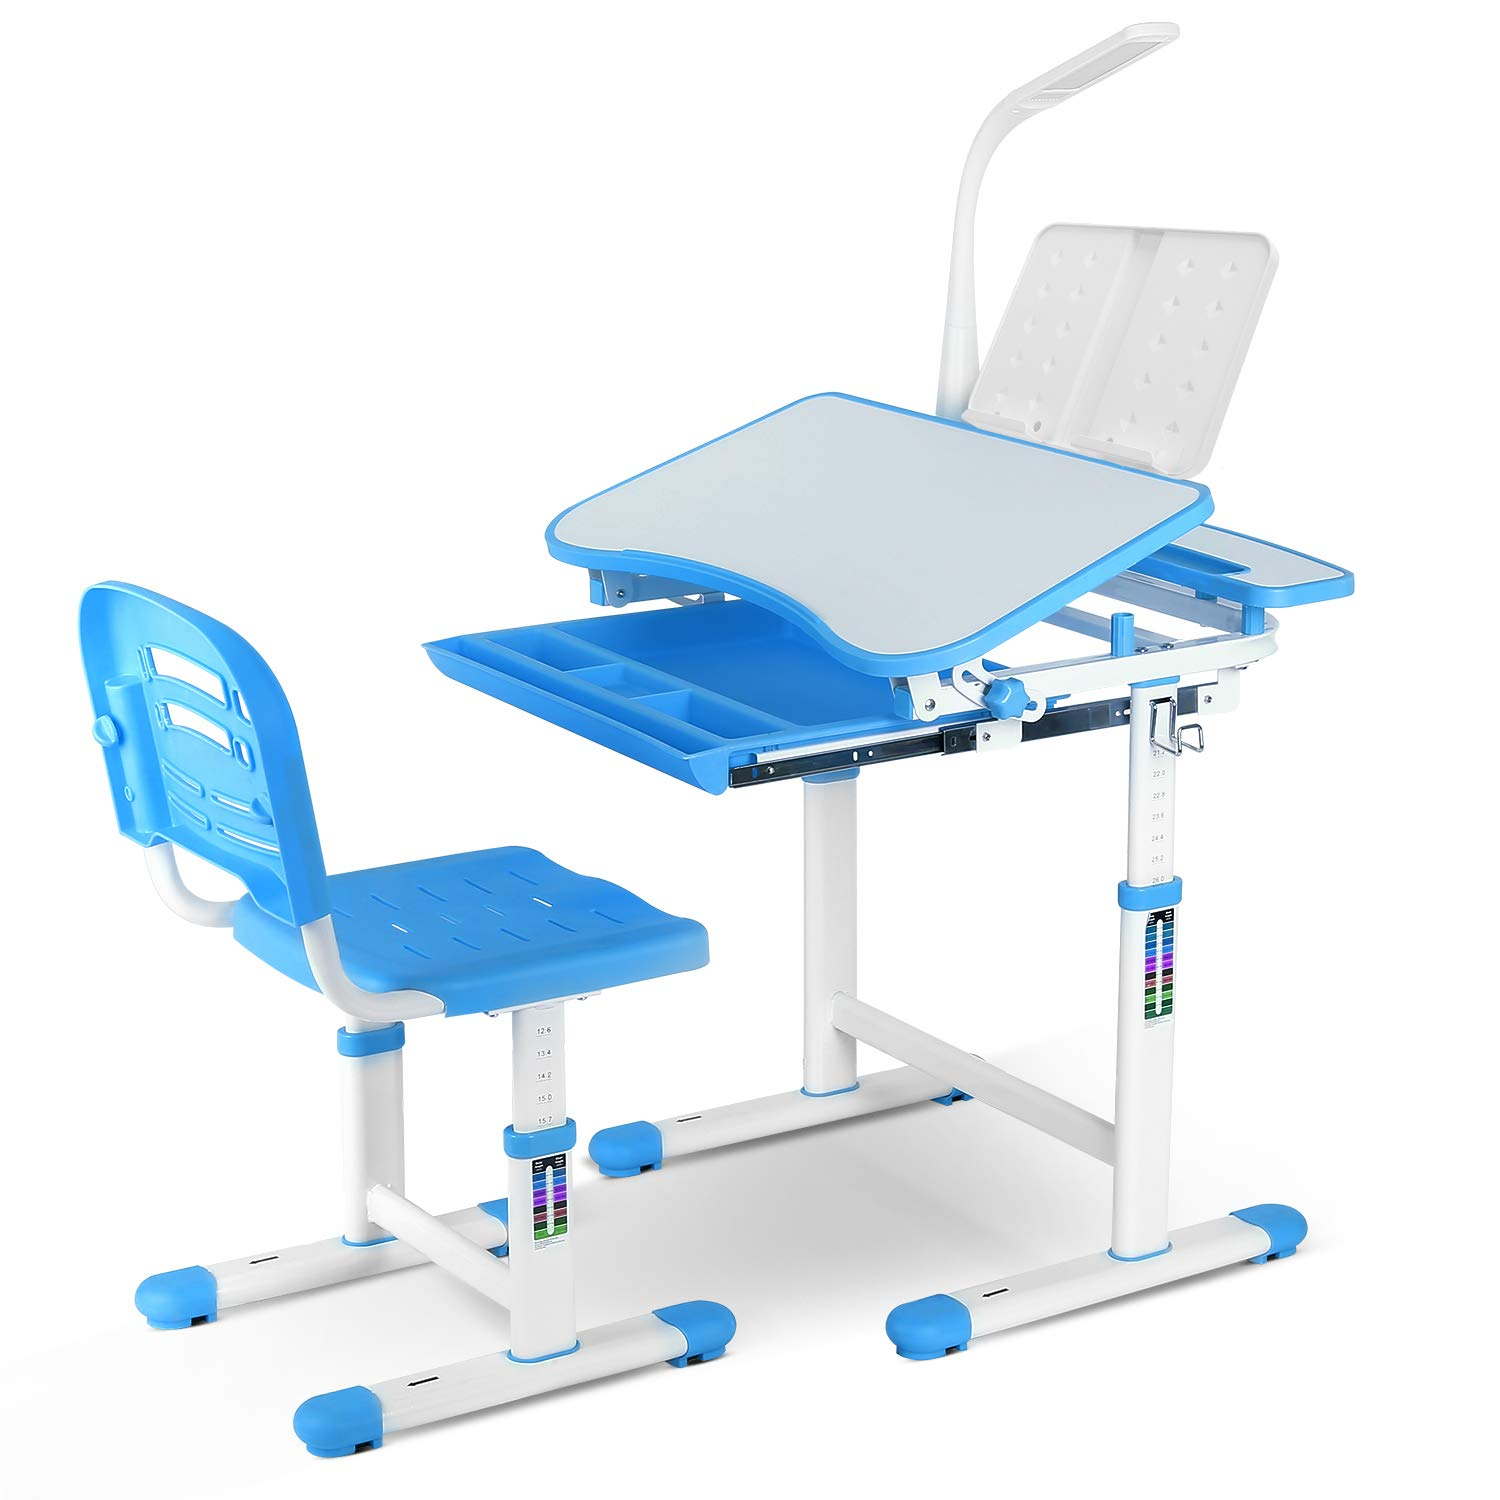 OTBY Kids Desk and Chair Set, Height Adjustable Children Study Table with Wood Tiltable Anti-Reflective Tabletop, Bookstand, Pull-Out Drawer Storage and Touch Led for School Students (Blue)